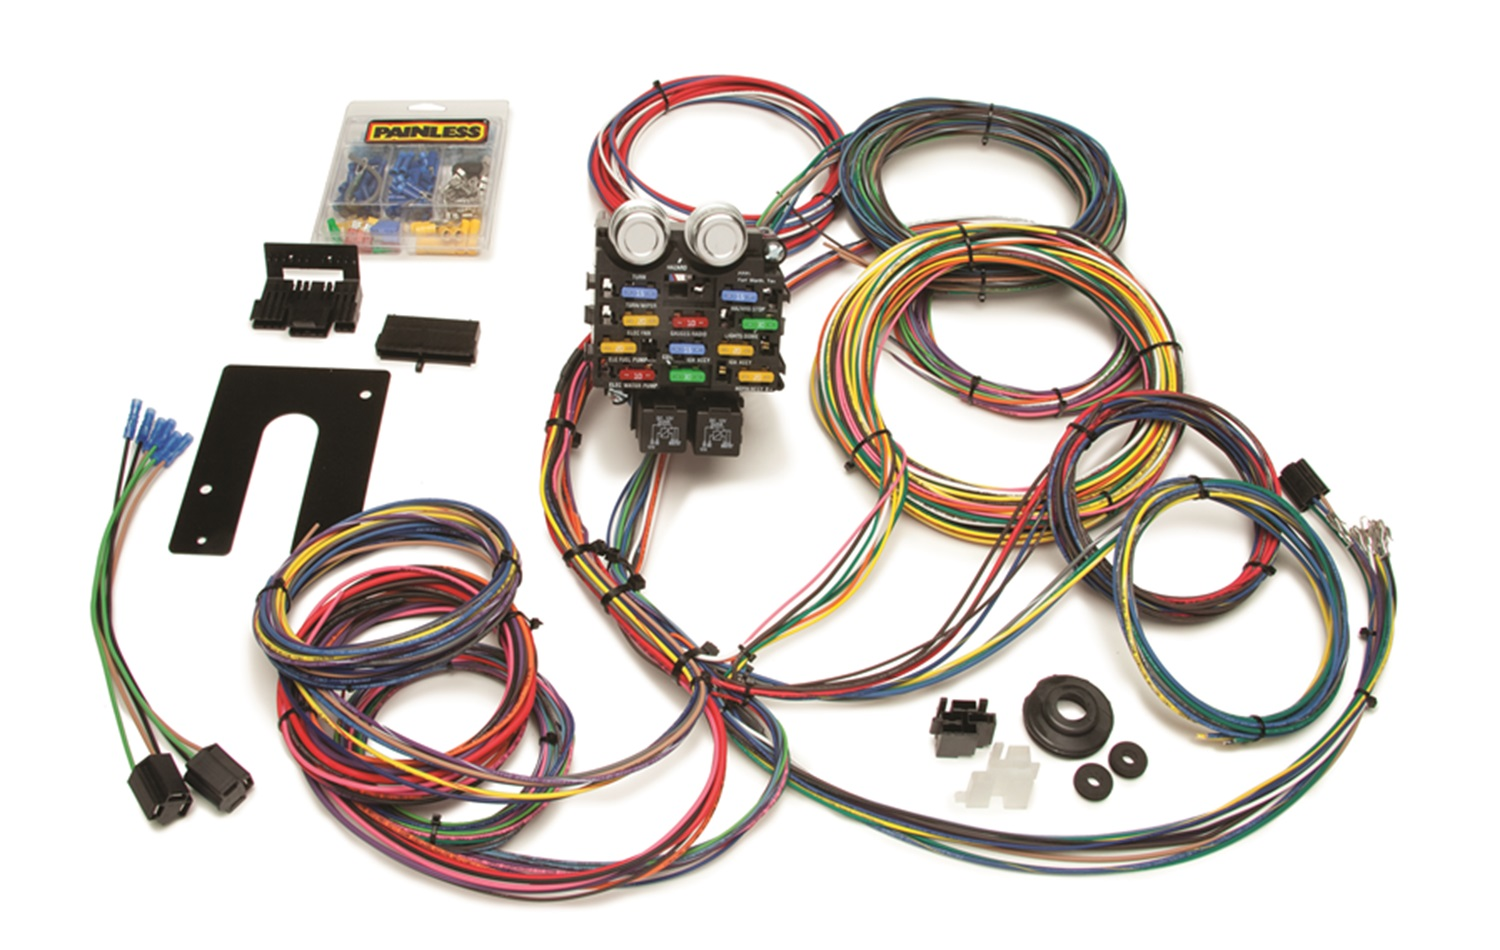 drag racing wiring harness well drag race car wiring kits also on painless basic wiring drag  well drag race car wiring kits also on